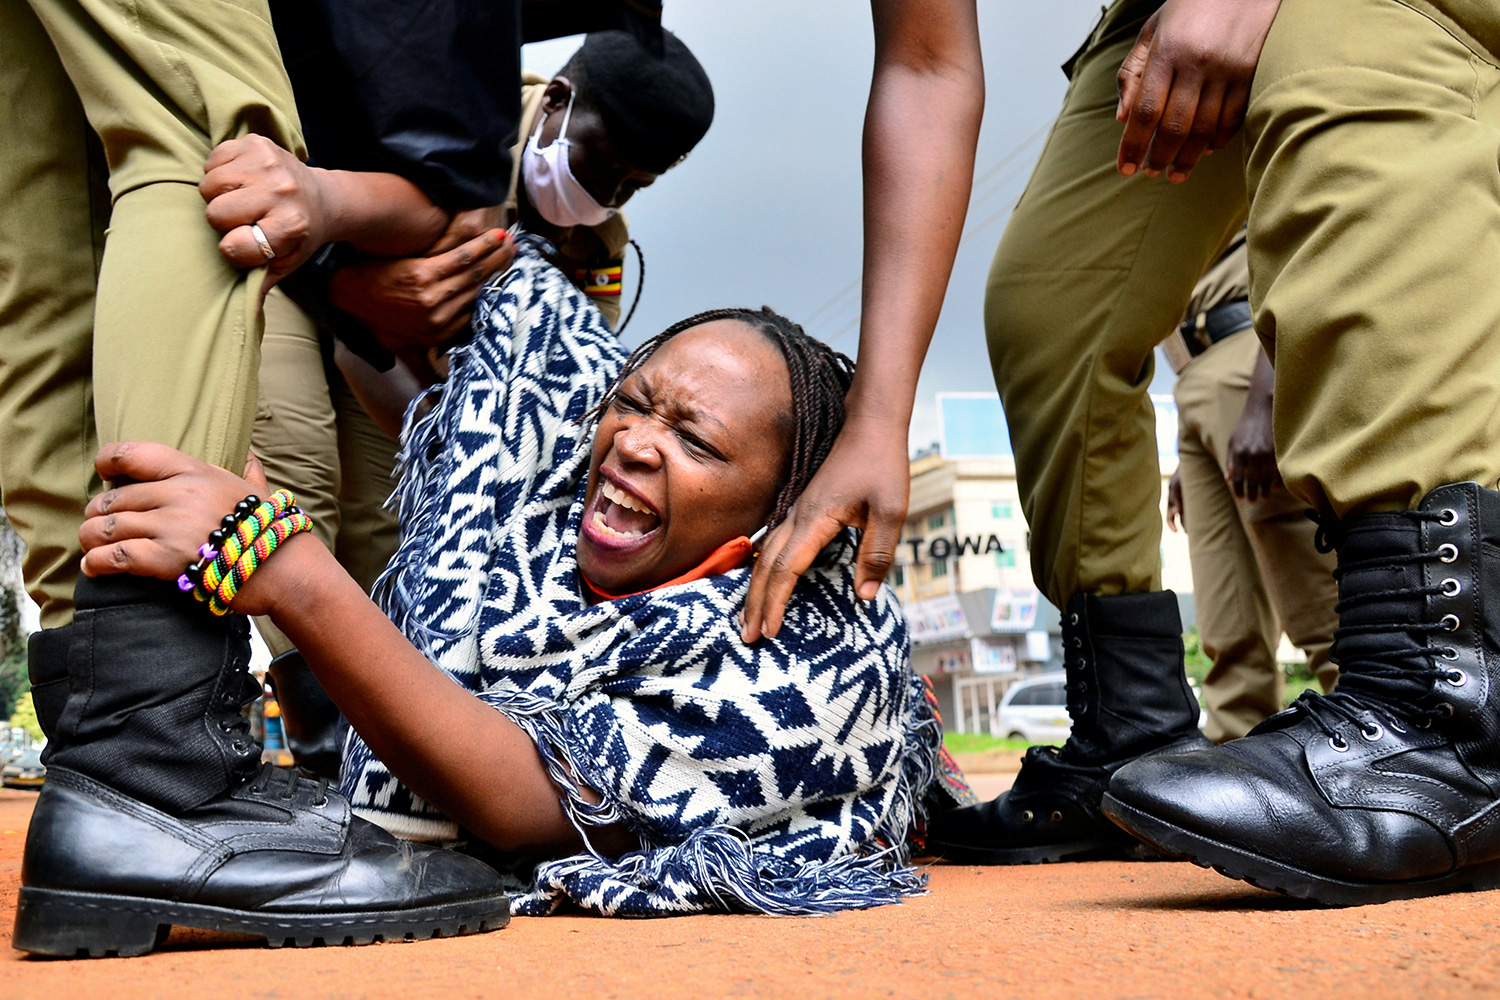 The photo shows the professor on the ground shouting as she clings to the leg of one uniformed officer while another reaches to grab her shoulder.